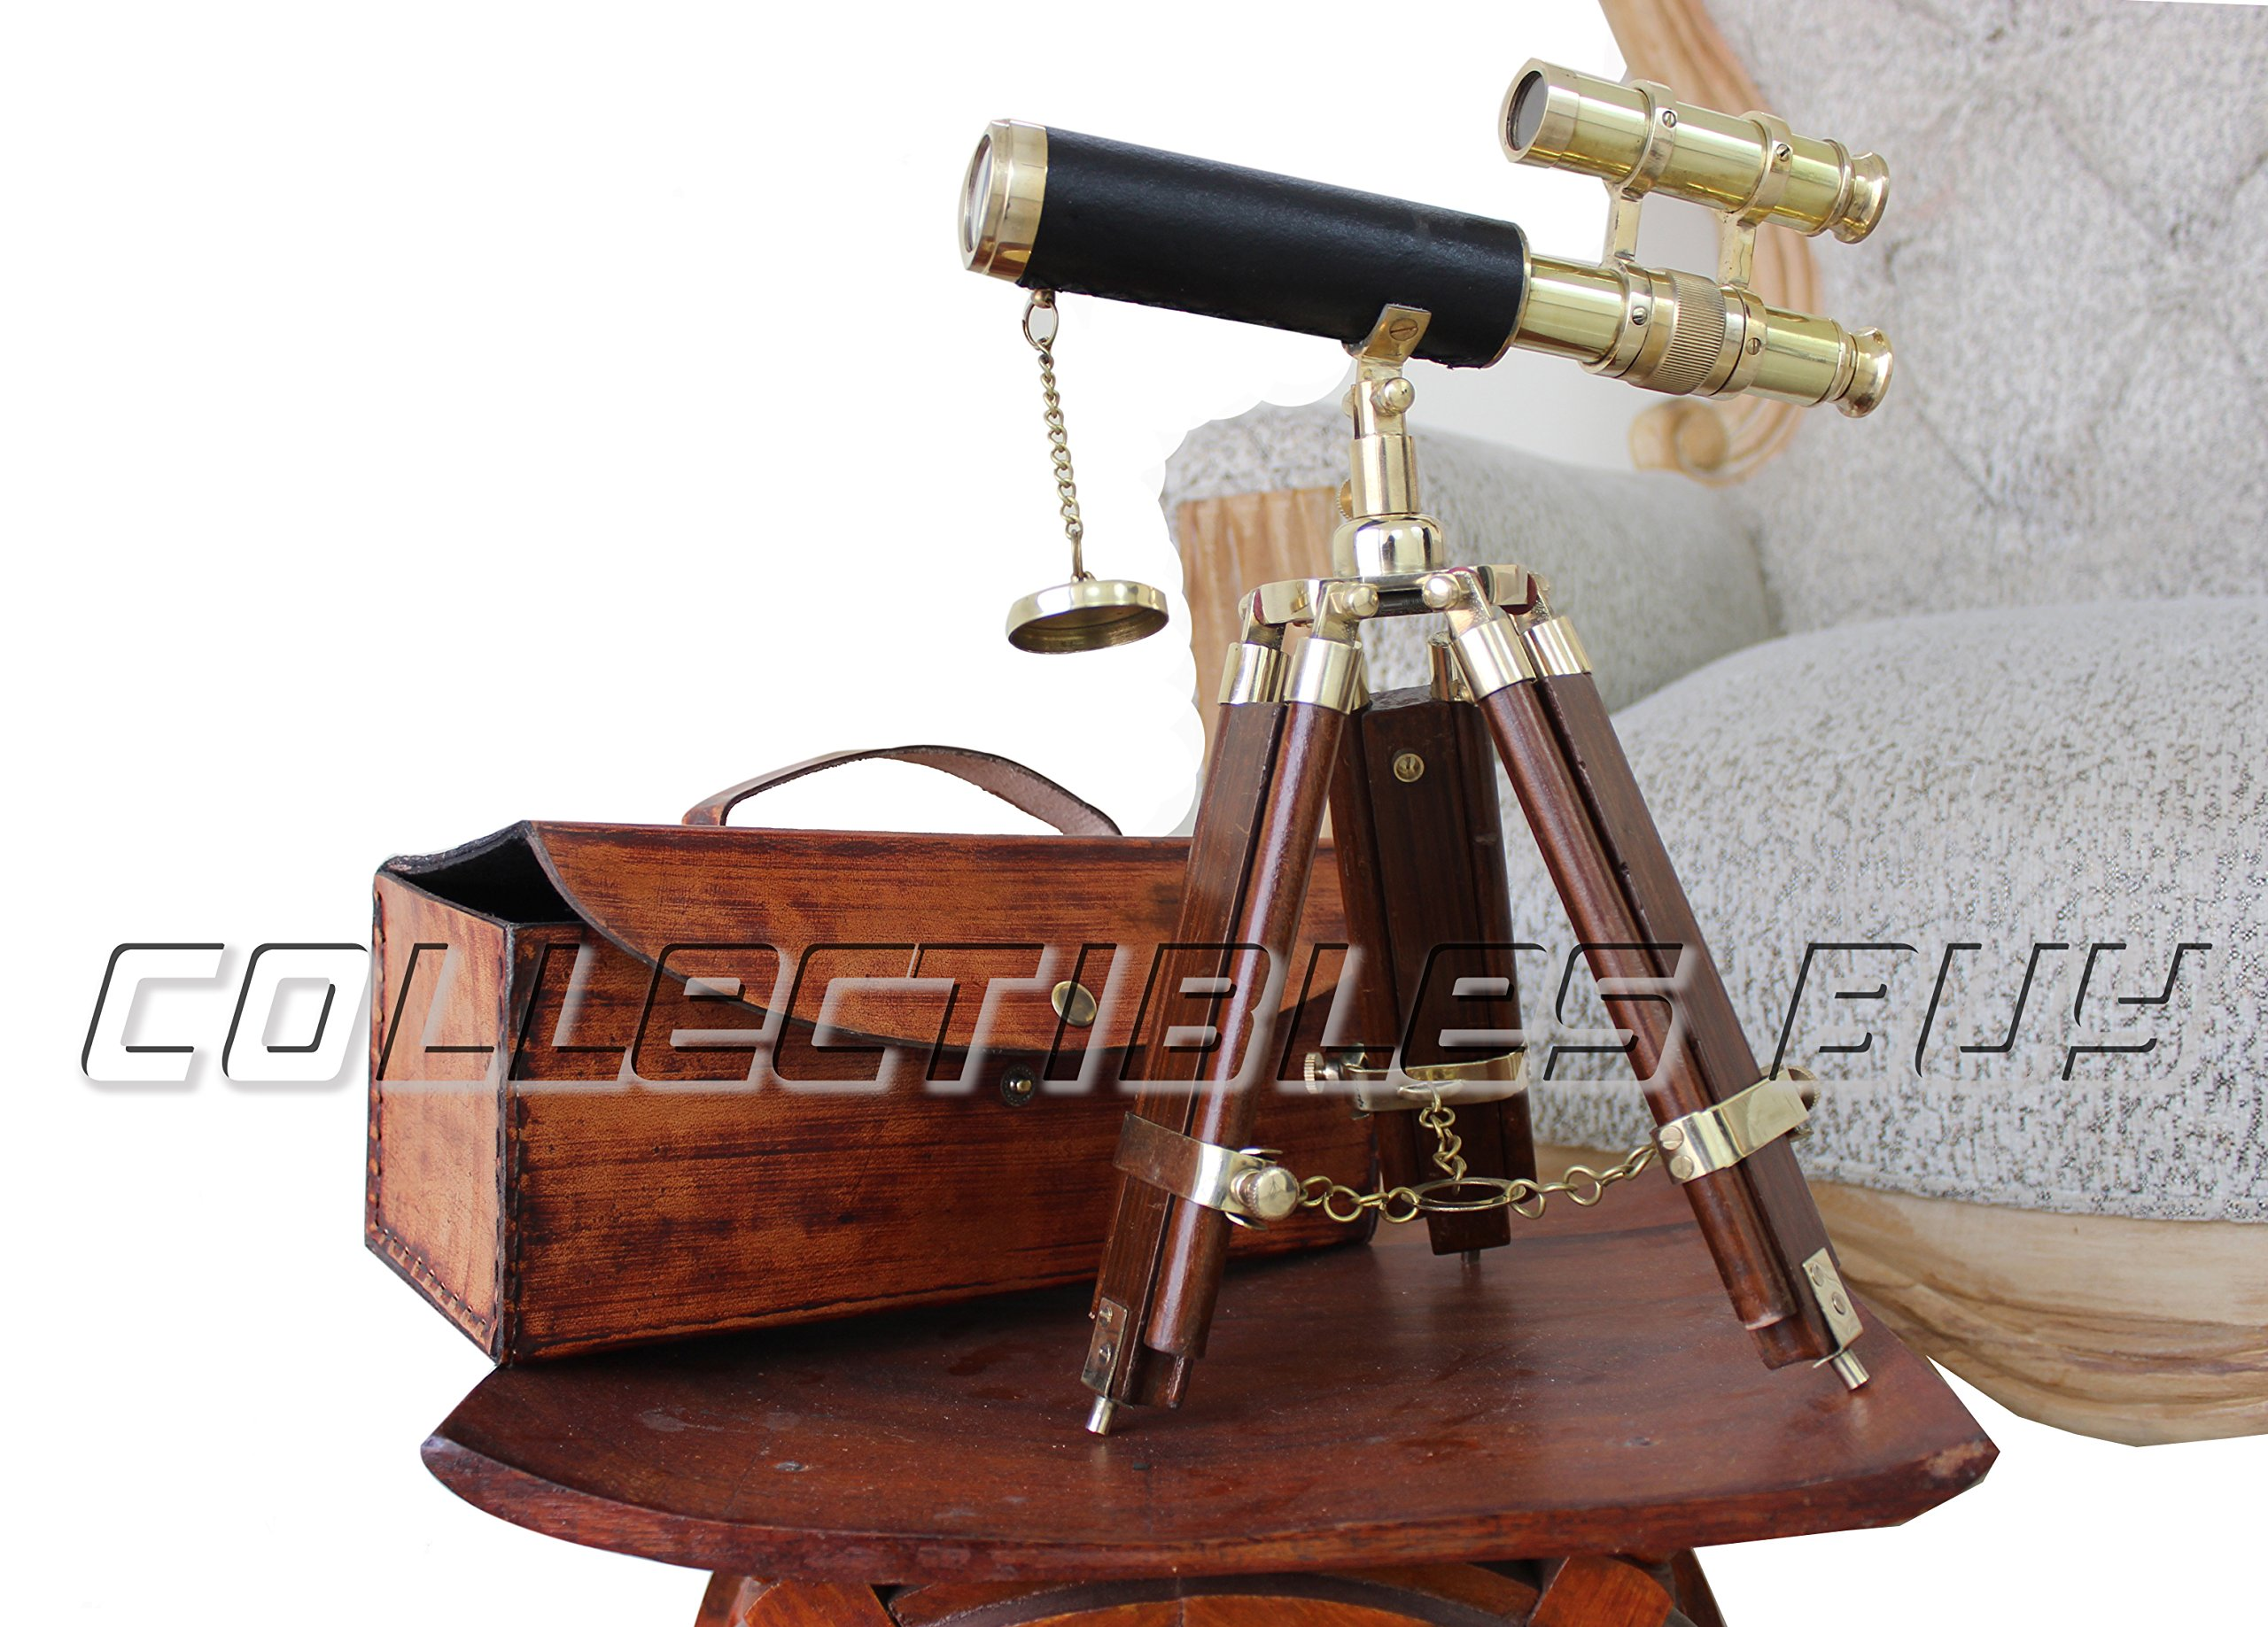 Vintage Double Barrel Telescope Brass Finish with Leather Case Maritime Solid Wooden Tripod